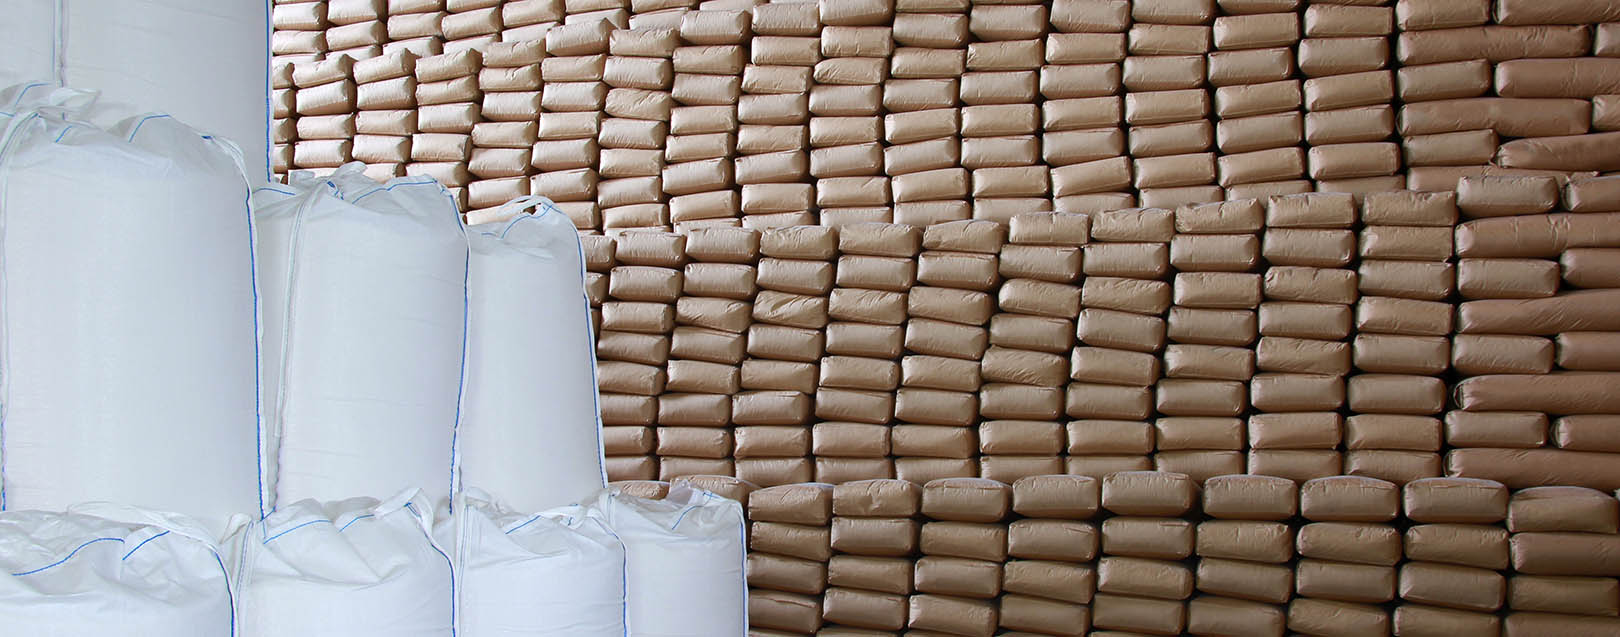 Maharashtra imposes stockholding limits on sugar